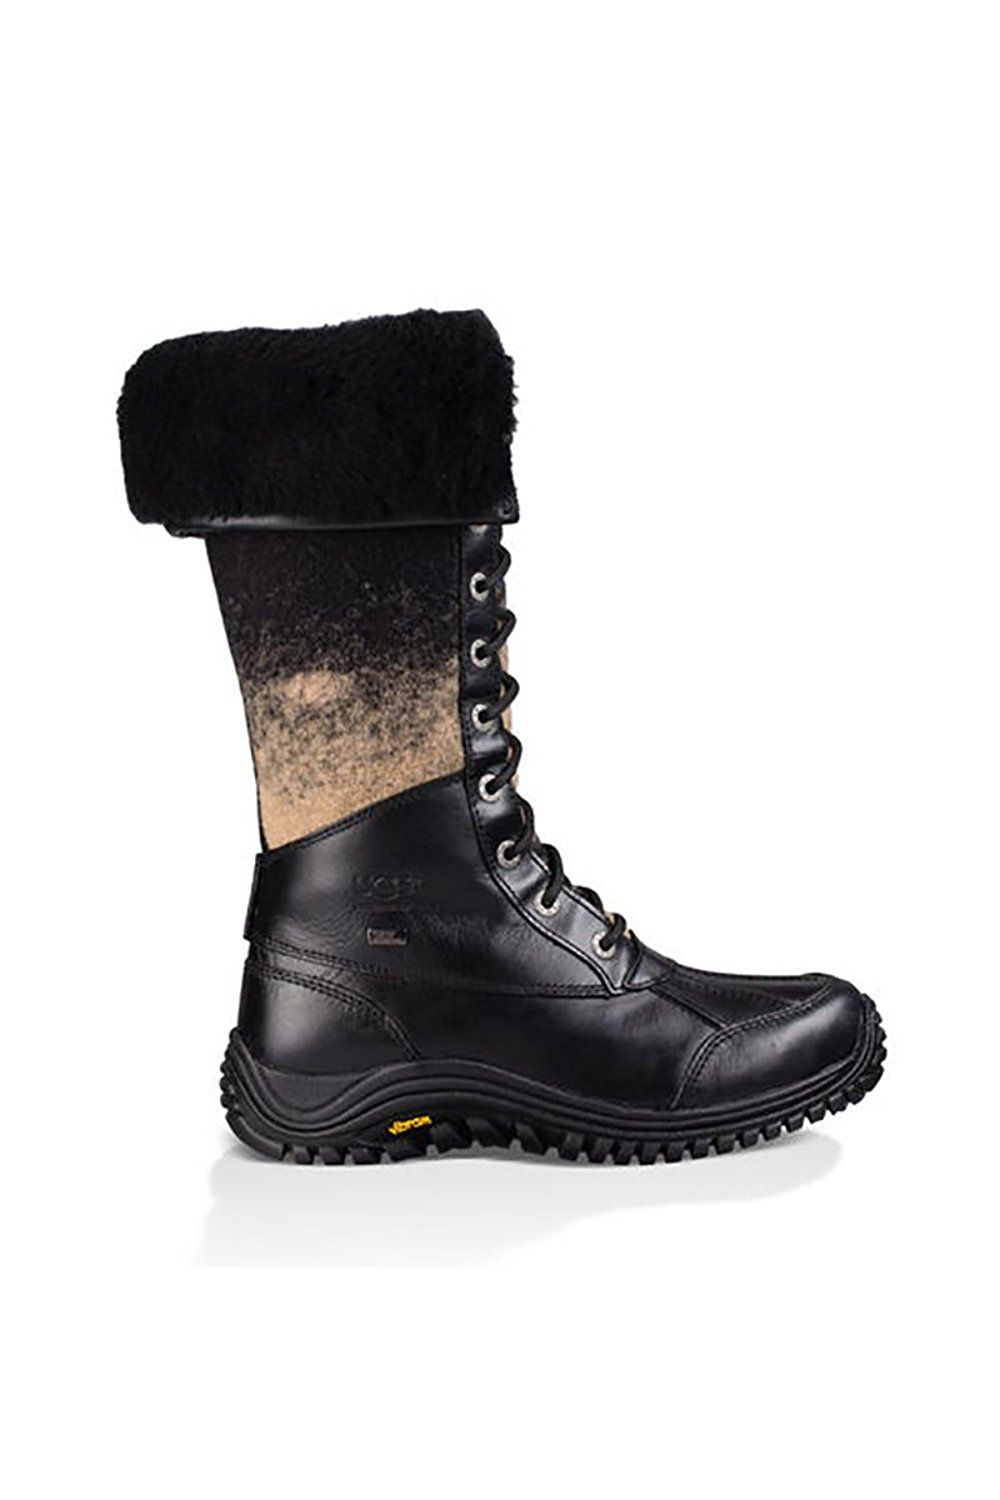 69f8fcd8a44 UGG Women's Adirondack Tall 1013508 Boot ** You can find out more ...